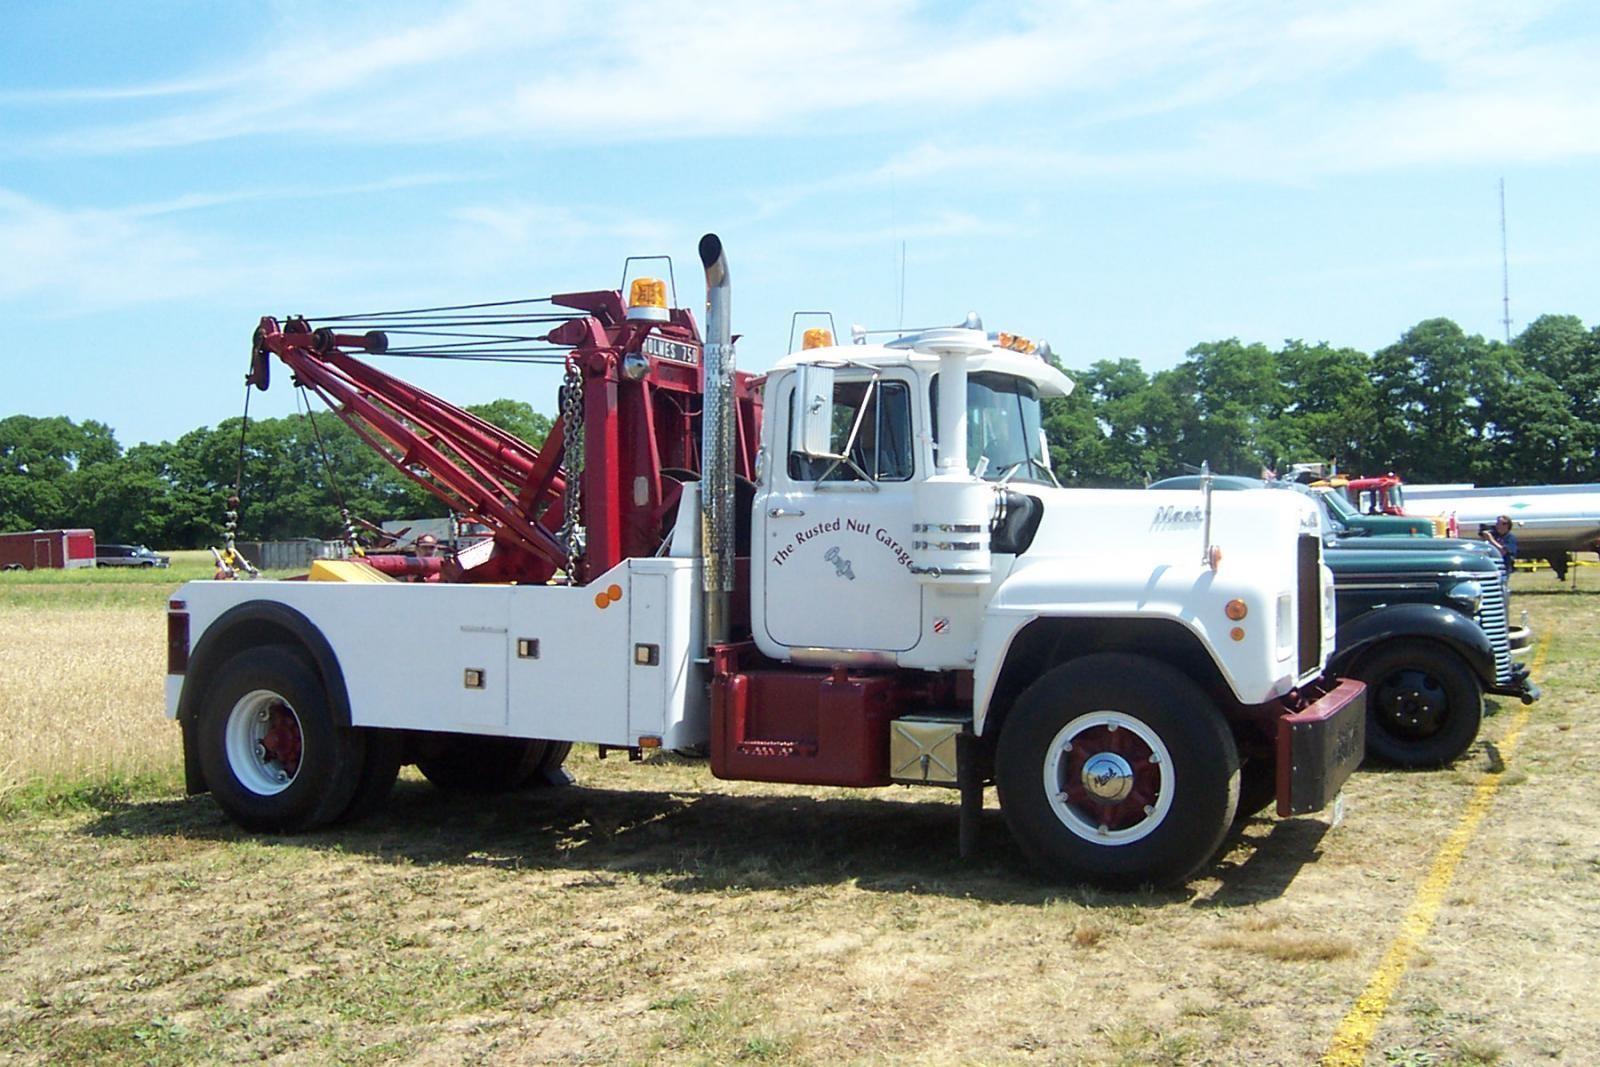 The R-600 at the Riverhead Engine Show 2004